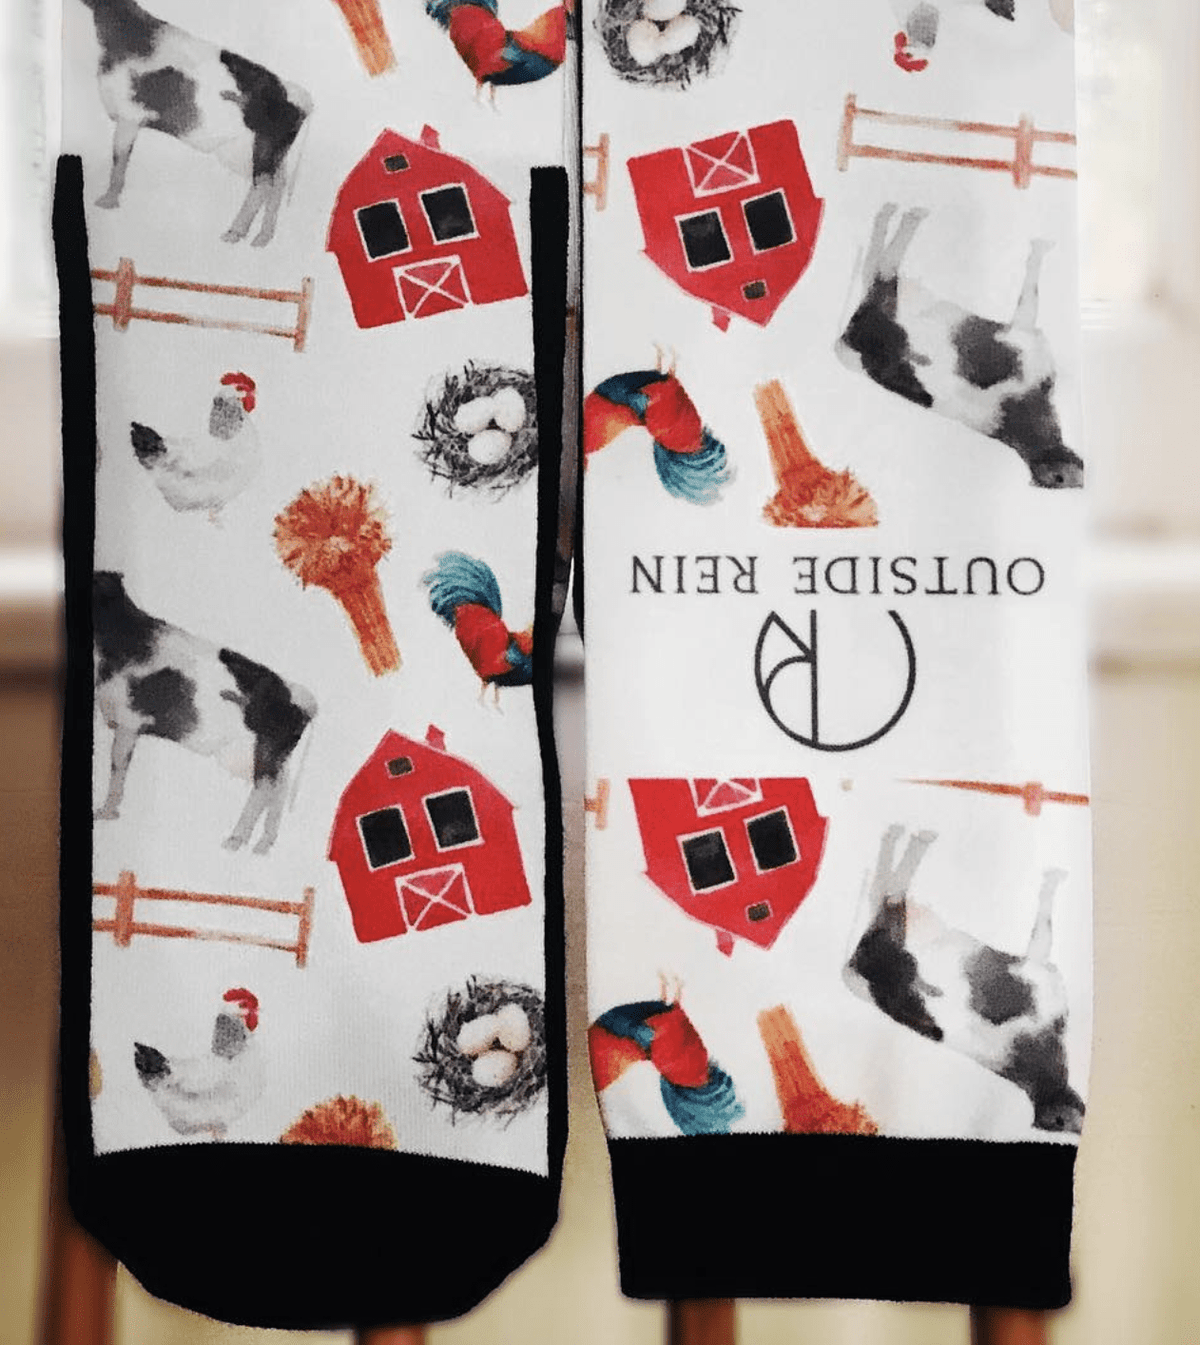 dreamers & schemers Boot Sock Custom D&S Riding Boot Socks equestrian boot socks boot socks thin socks riding socks pattern socks tall socks funny socks knee high socks horse socks horse show socks